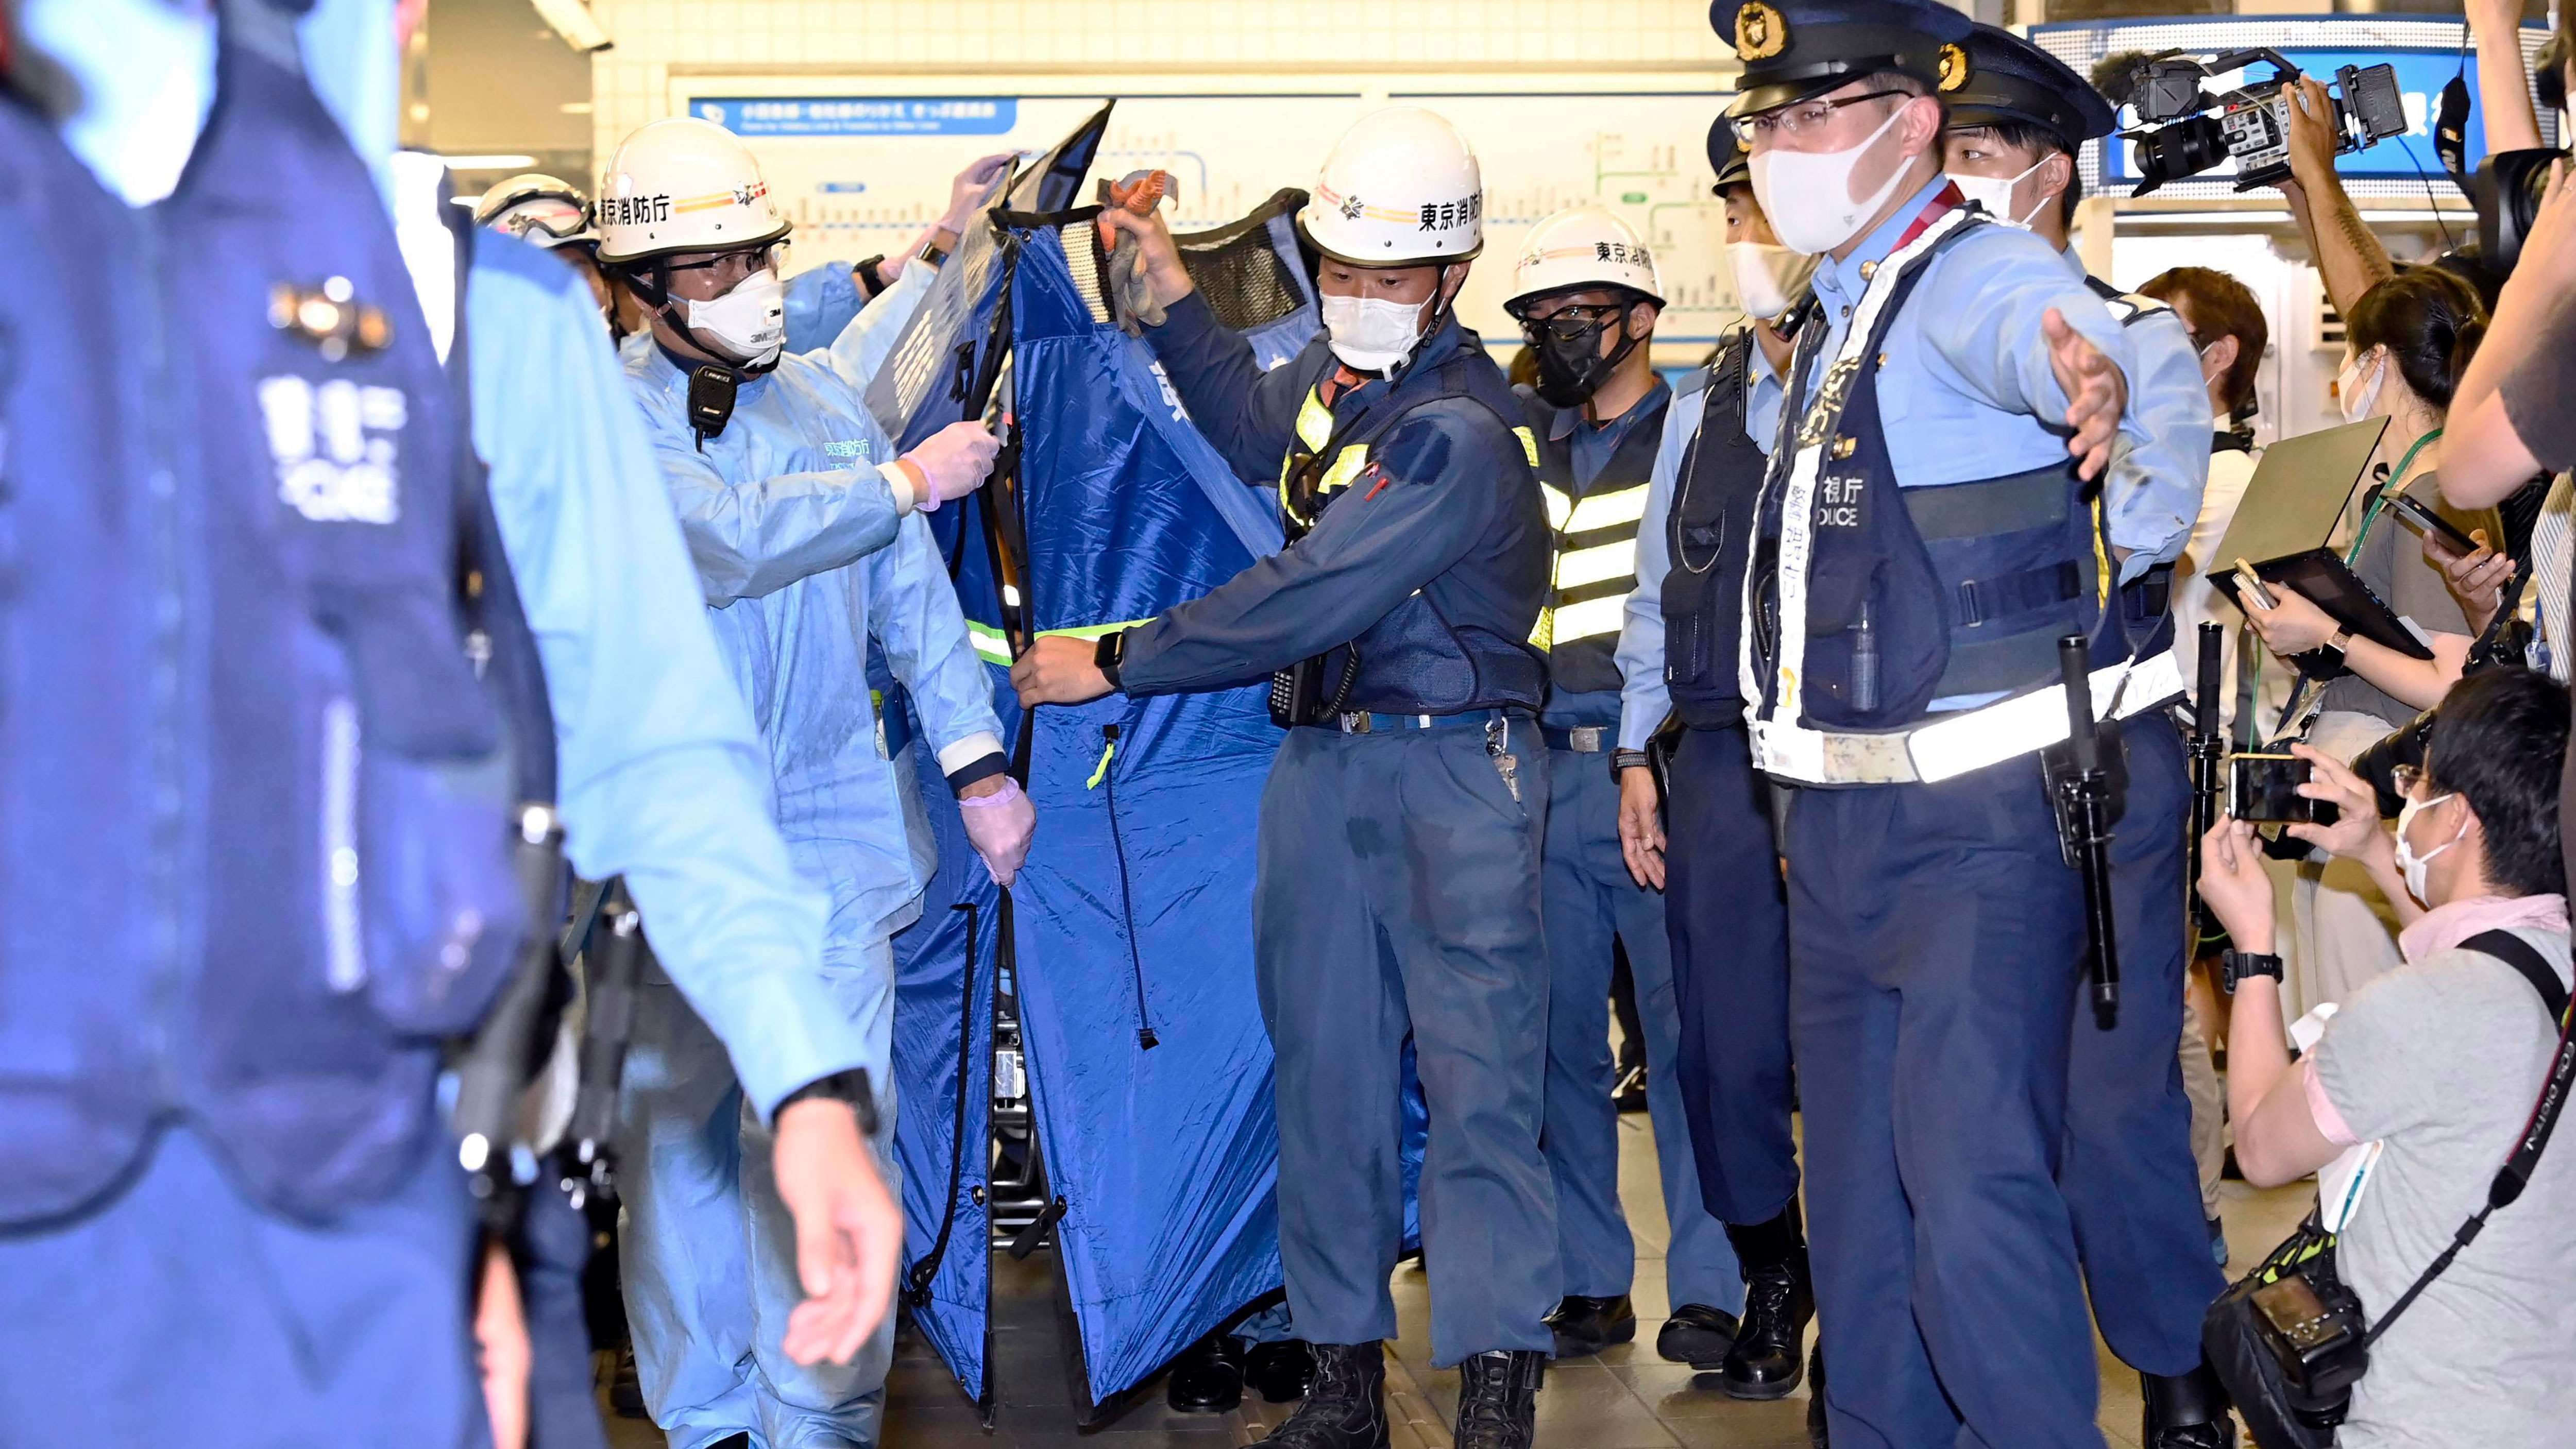 Rescuers carry a stretcher, believed to be carrying an injured passenger at Soshigaya Okura Station after stabbing on a commuter train, in Tokyo Friday night.